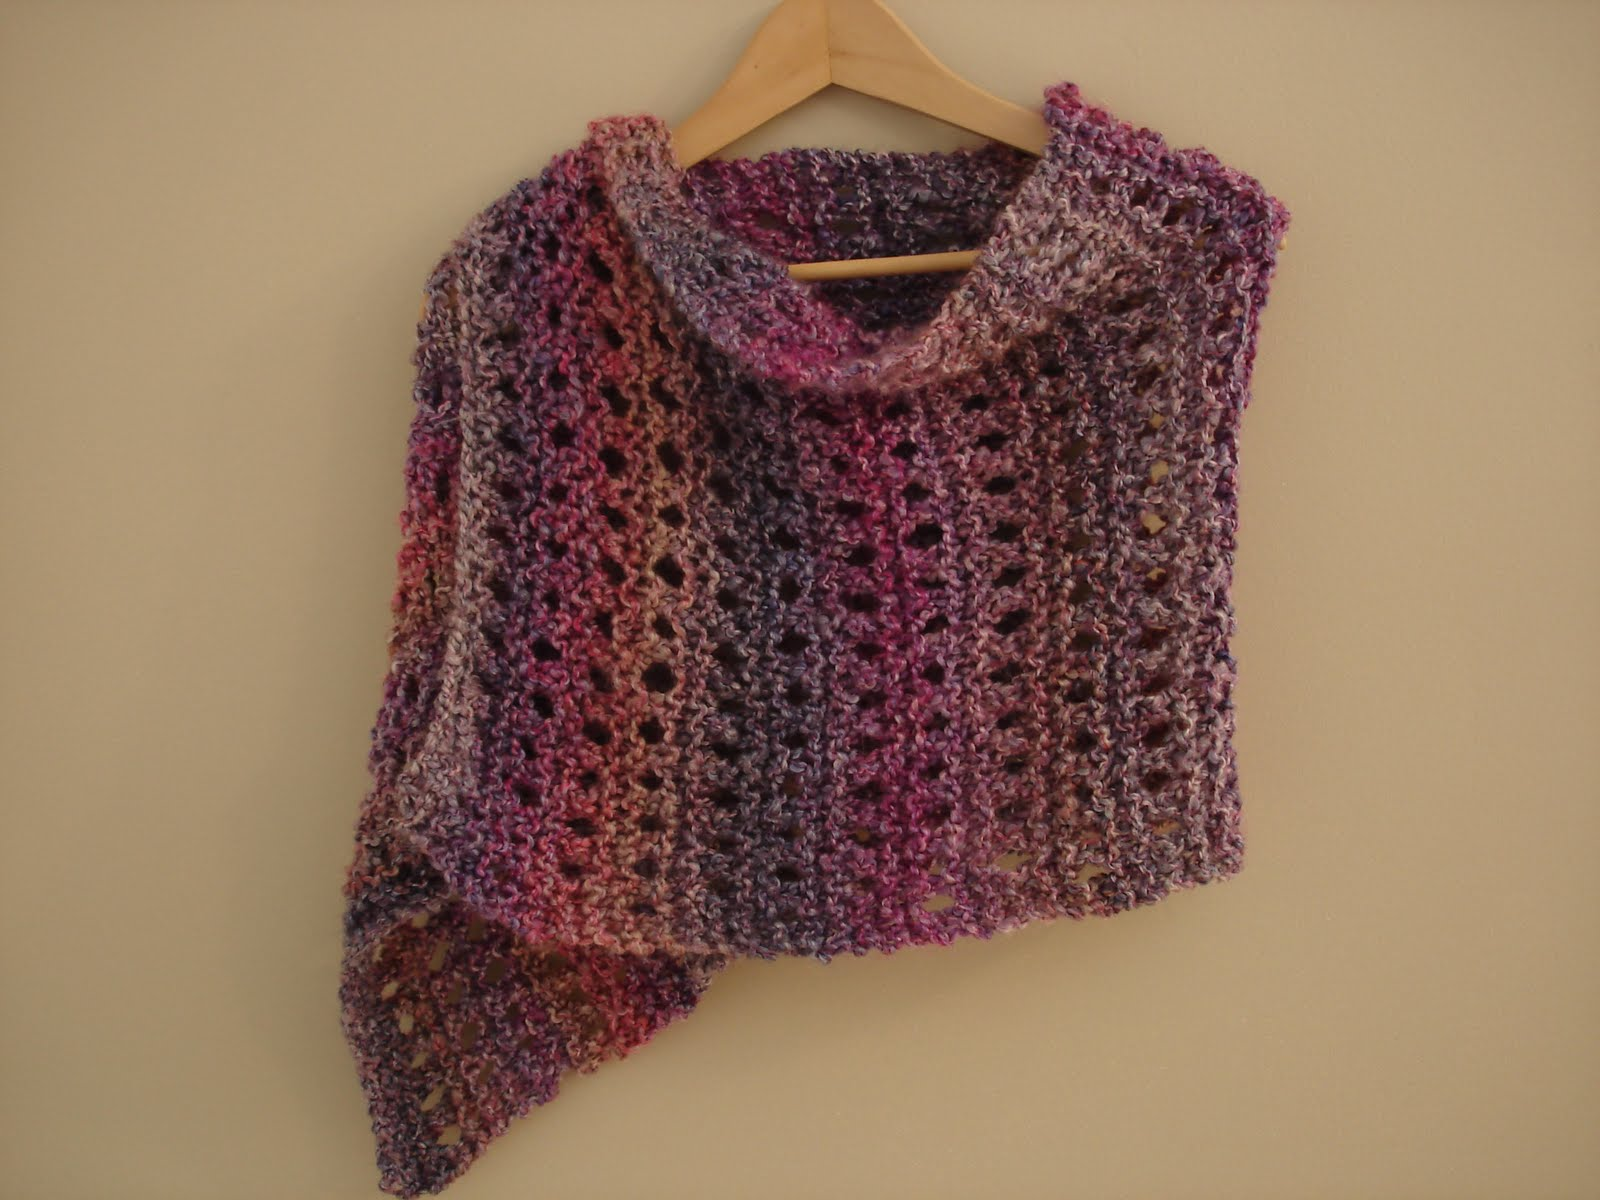 Knitting Patterns For Wraps Free : Fiber Flux: Free Knitting Pattern...A Peaceful Shawl!